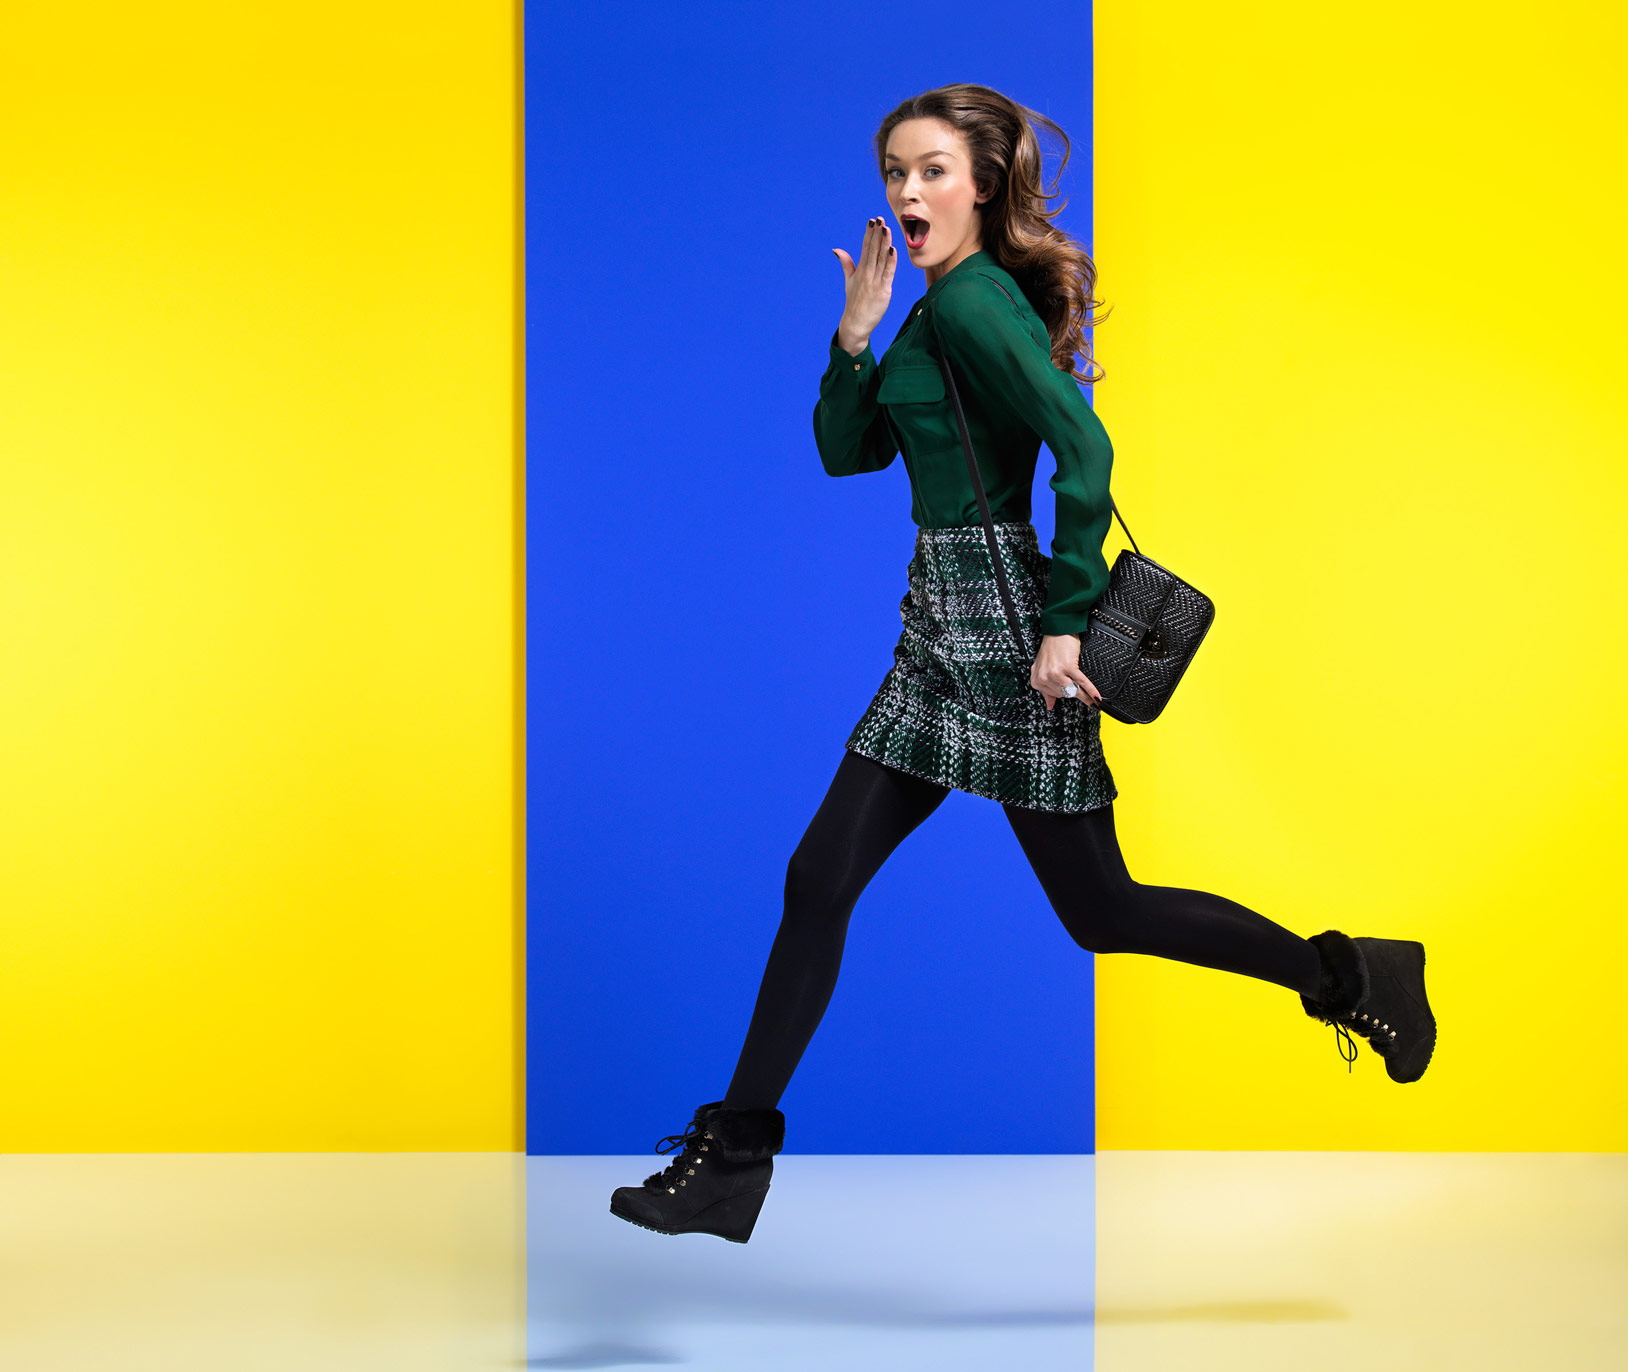 Model running against yellow and blue background